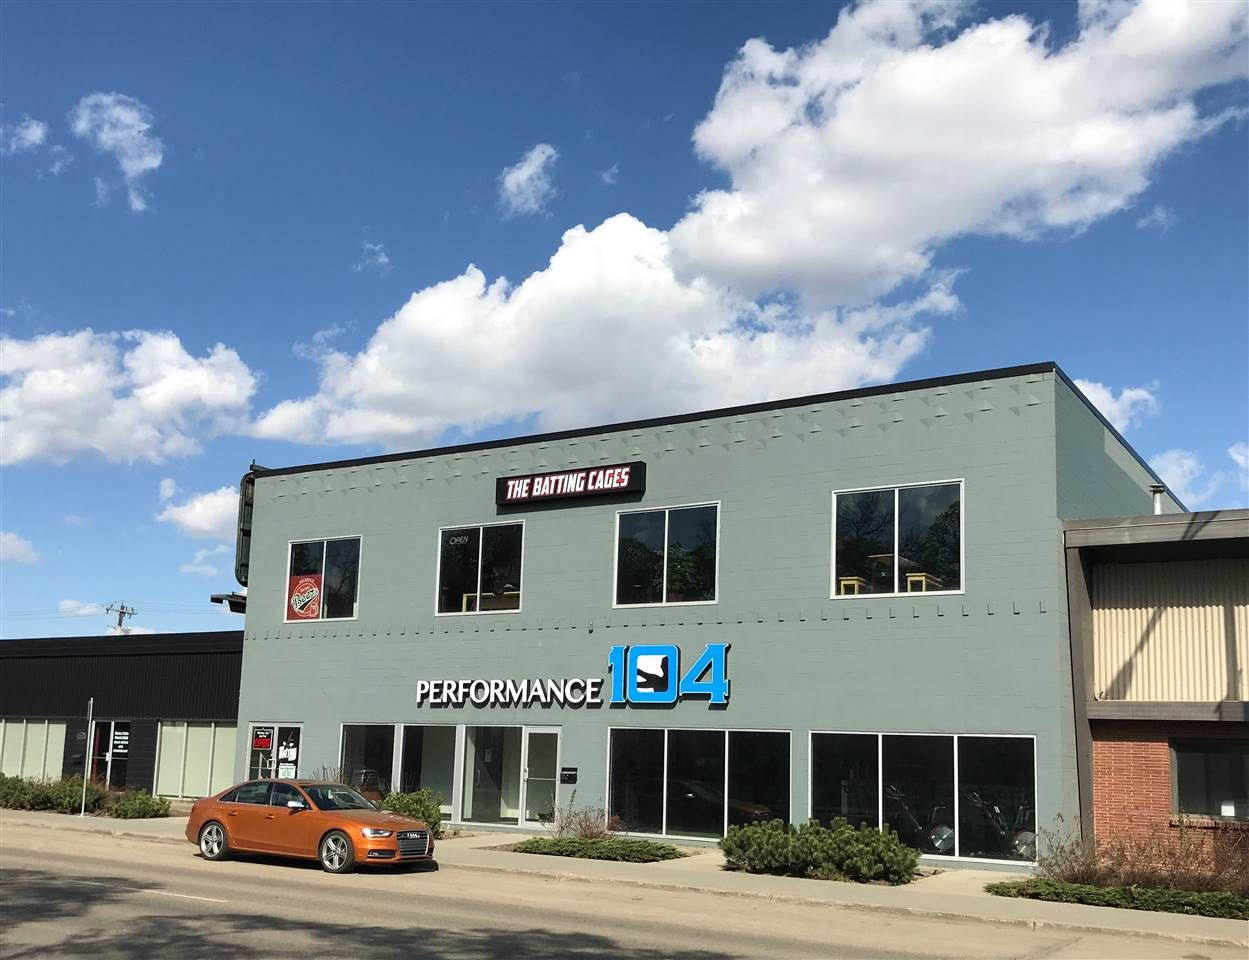 Main Photo: 7121 104 Street NW in Edmonton: Zone 41 Industrial for sale : MLS®# E4112374